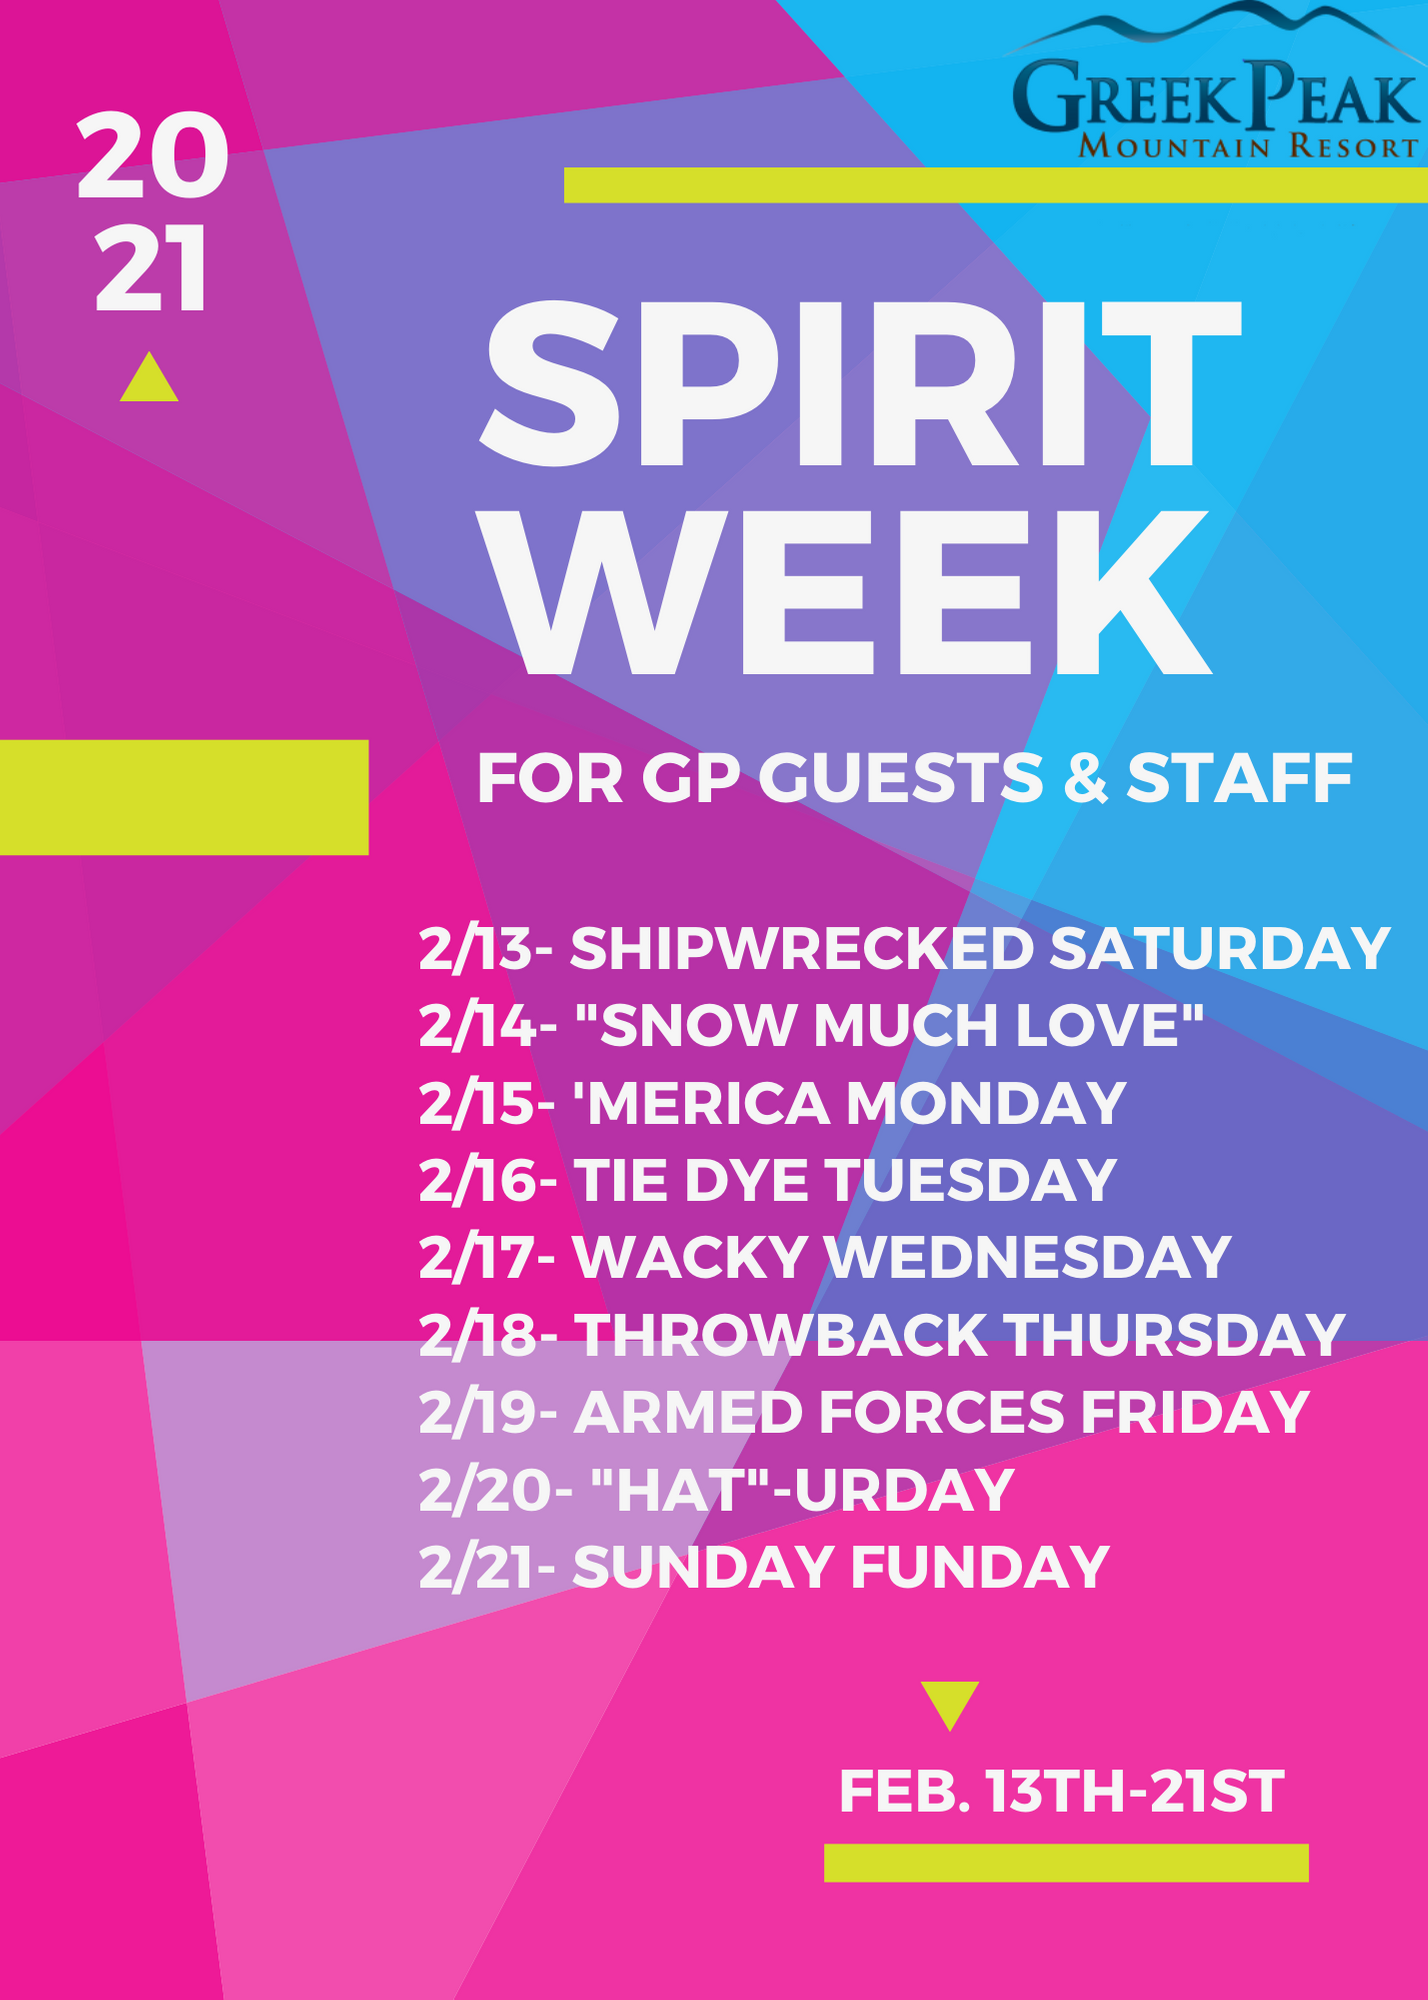 Greek Peak Mountain Resort's 2021 spirit week for guests and staff. This starts Saturday 2/13/21 and goes until Sunday 2/21/21. There is a new theme for you to dress like every day, during the week this event takes place. The first day, Saturday 2/13/21, is dress like a pirate day. 2/14/21 is dress in red, white and pink day. 2/15/21 is dress in American themed clothes. 2/16/21 is dress in tie dye. 2/17/21 is wacky wednesday. 2/18/21 is throwback Thursday. so dress in old clothes. 2/19/21 is dress like you're in the armed forces (camo is an idea). 2/20/21 is a Saturday, please wear a hat. Finally, Sunday, 2/21/21 is dress in your favorite sports teams apparel.